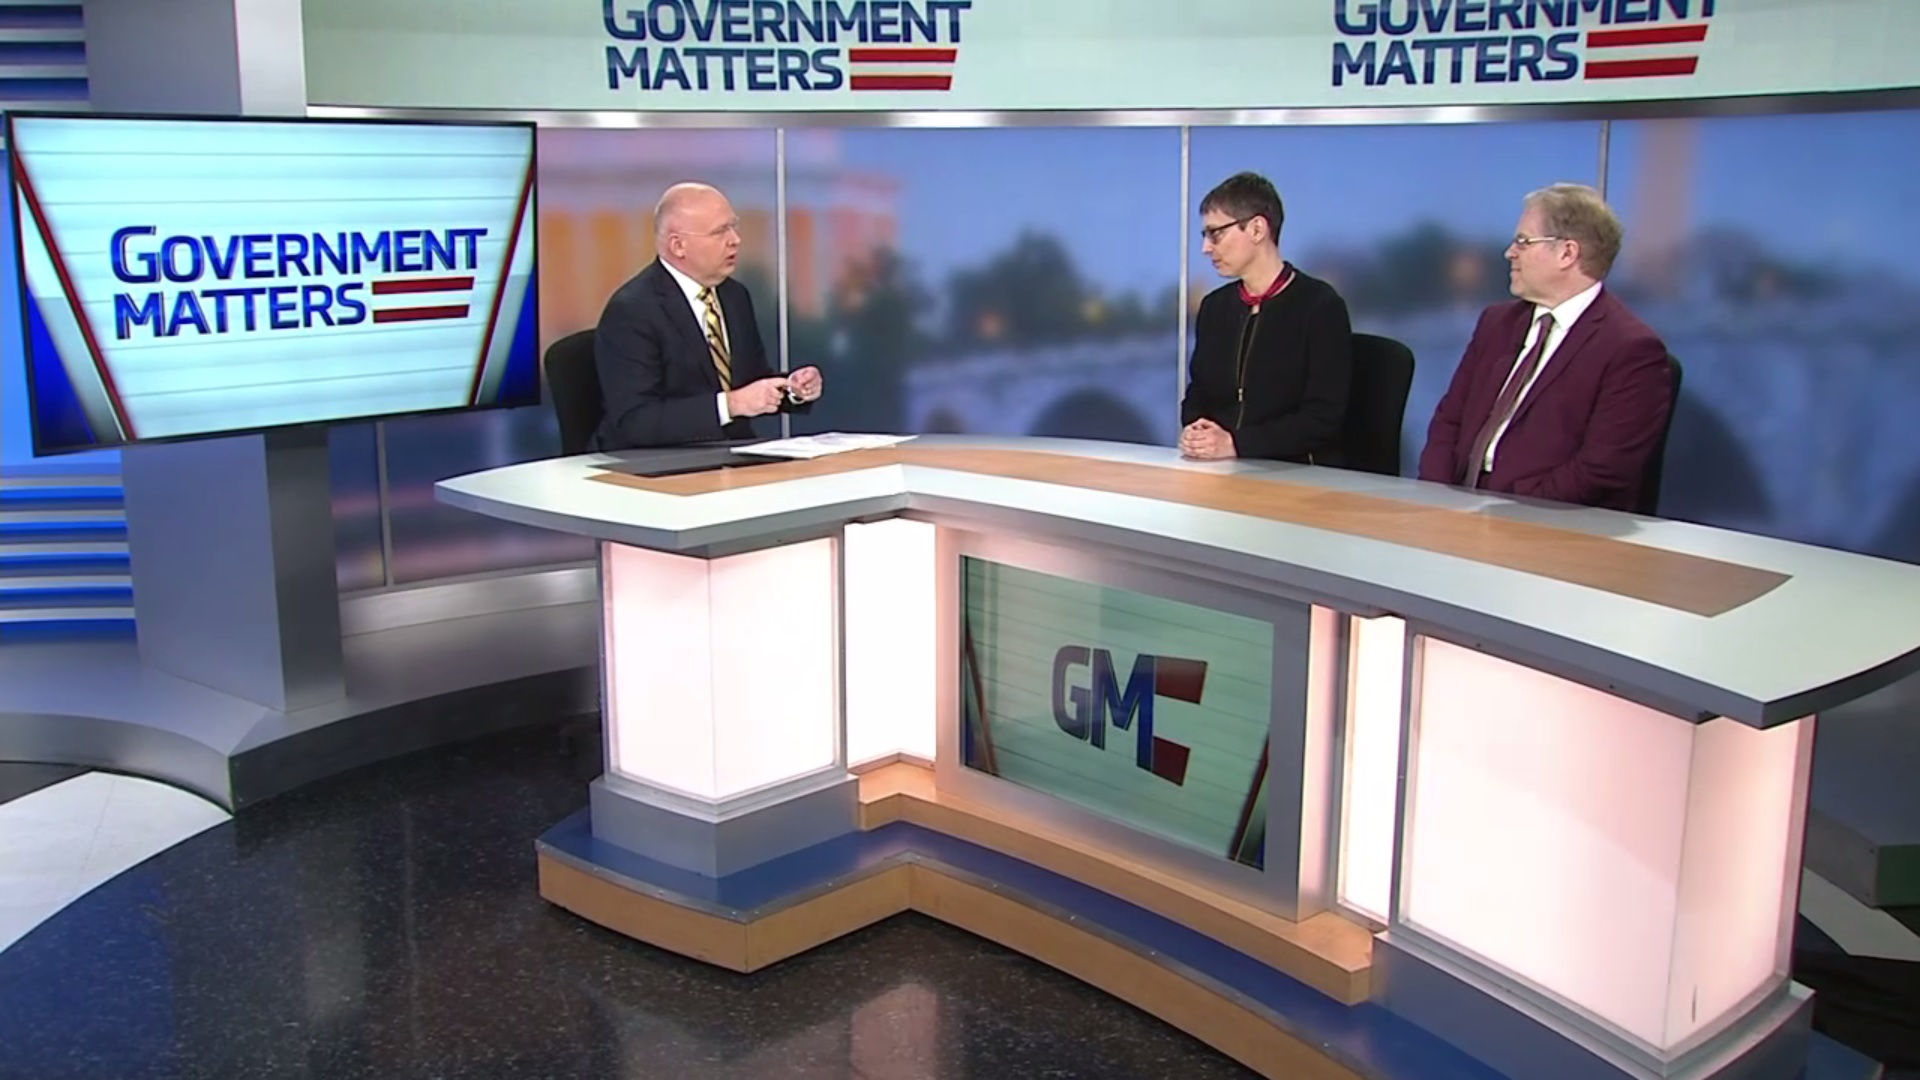 Government Matters (Full Show) – March 20, 2018